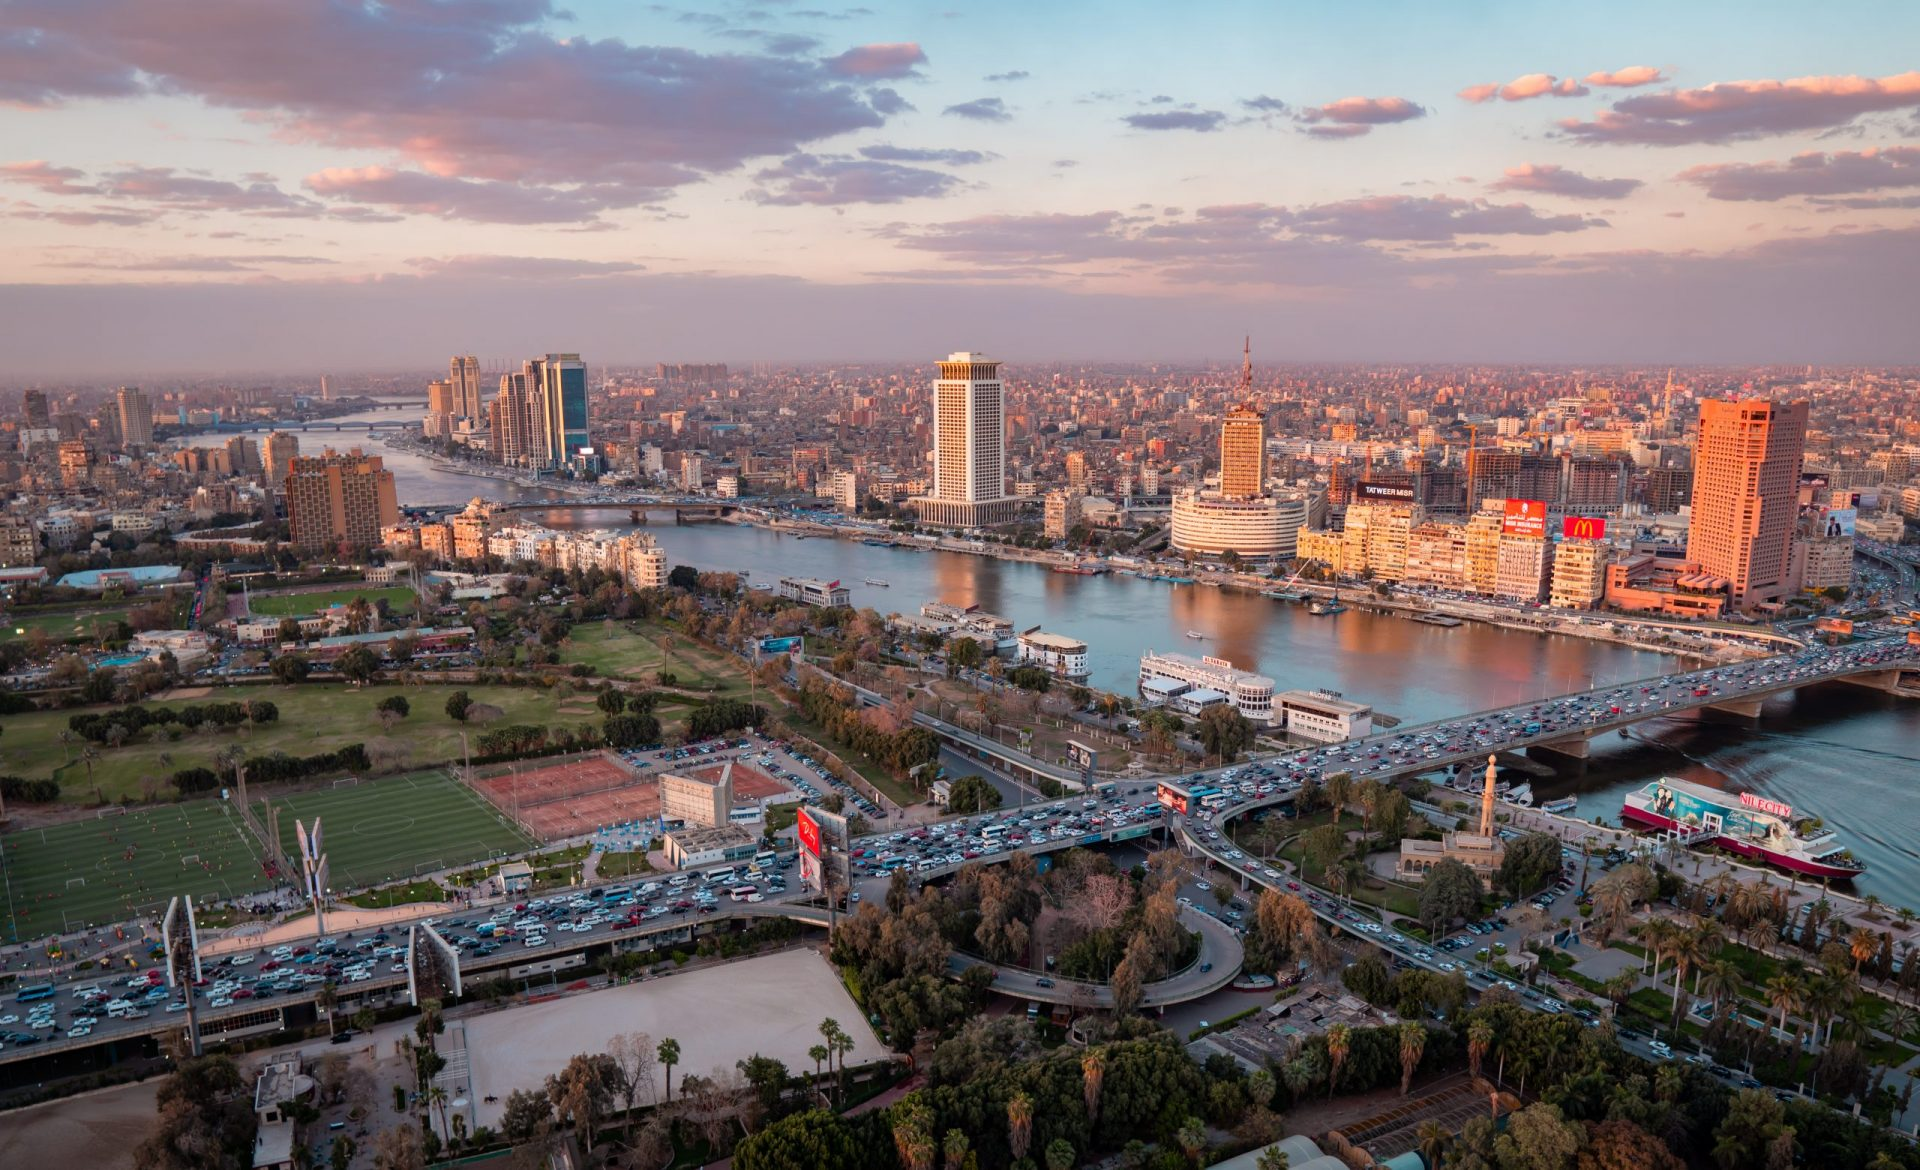 10 Travel Photography Tips - one hour dusk and dawn rule - sunset on the Nile in Cairo, Egypt